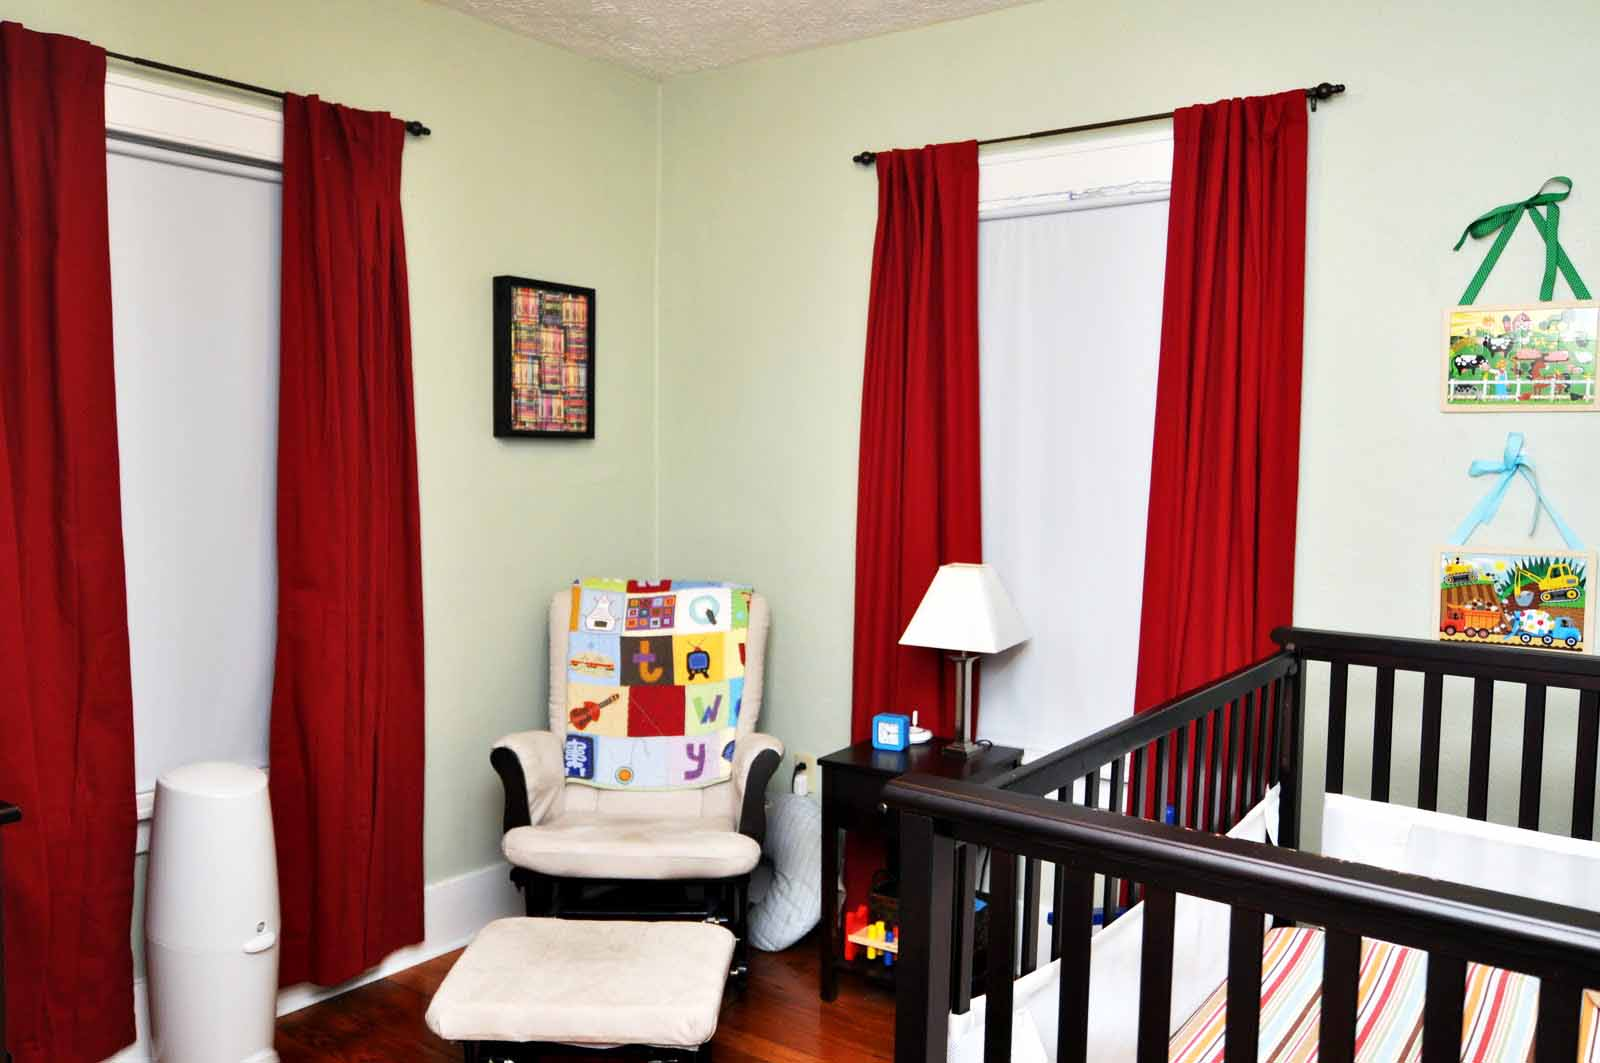 Kids modern bedroom curtains - Red Blackout Curtains Nursery With Dark Wooden Crib And White Chair